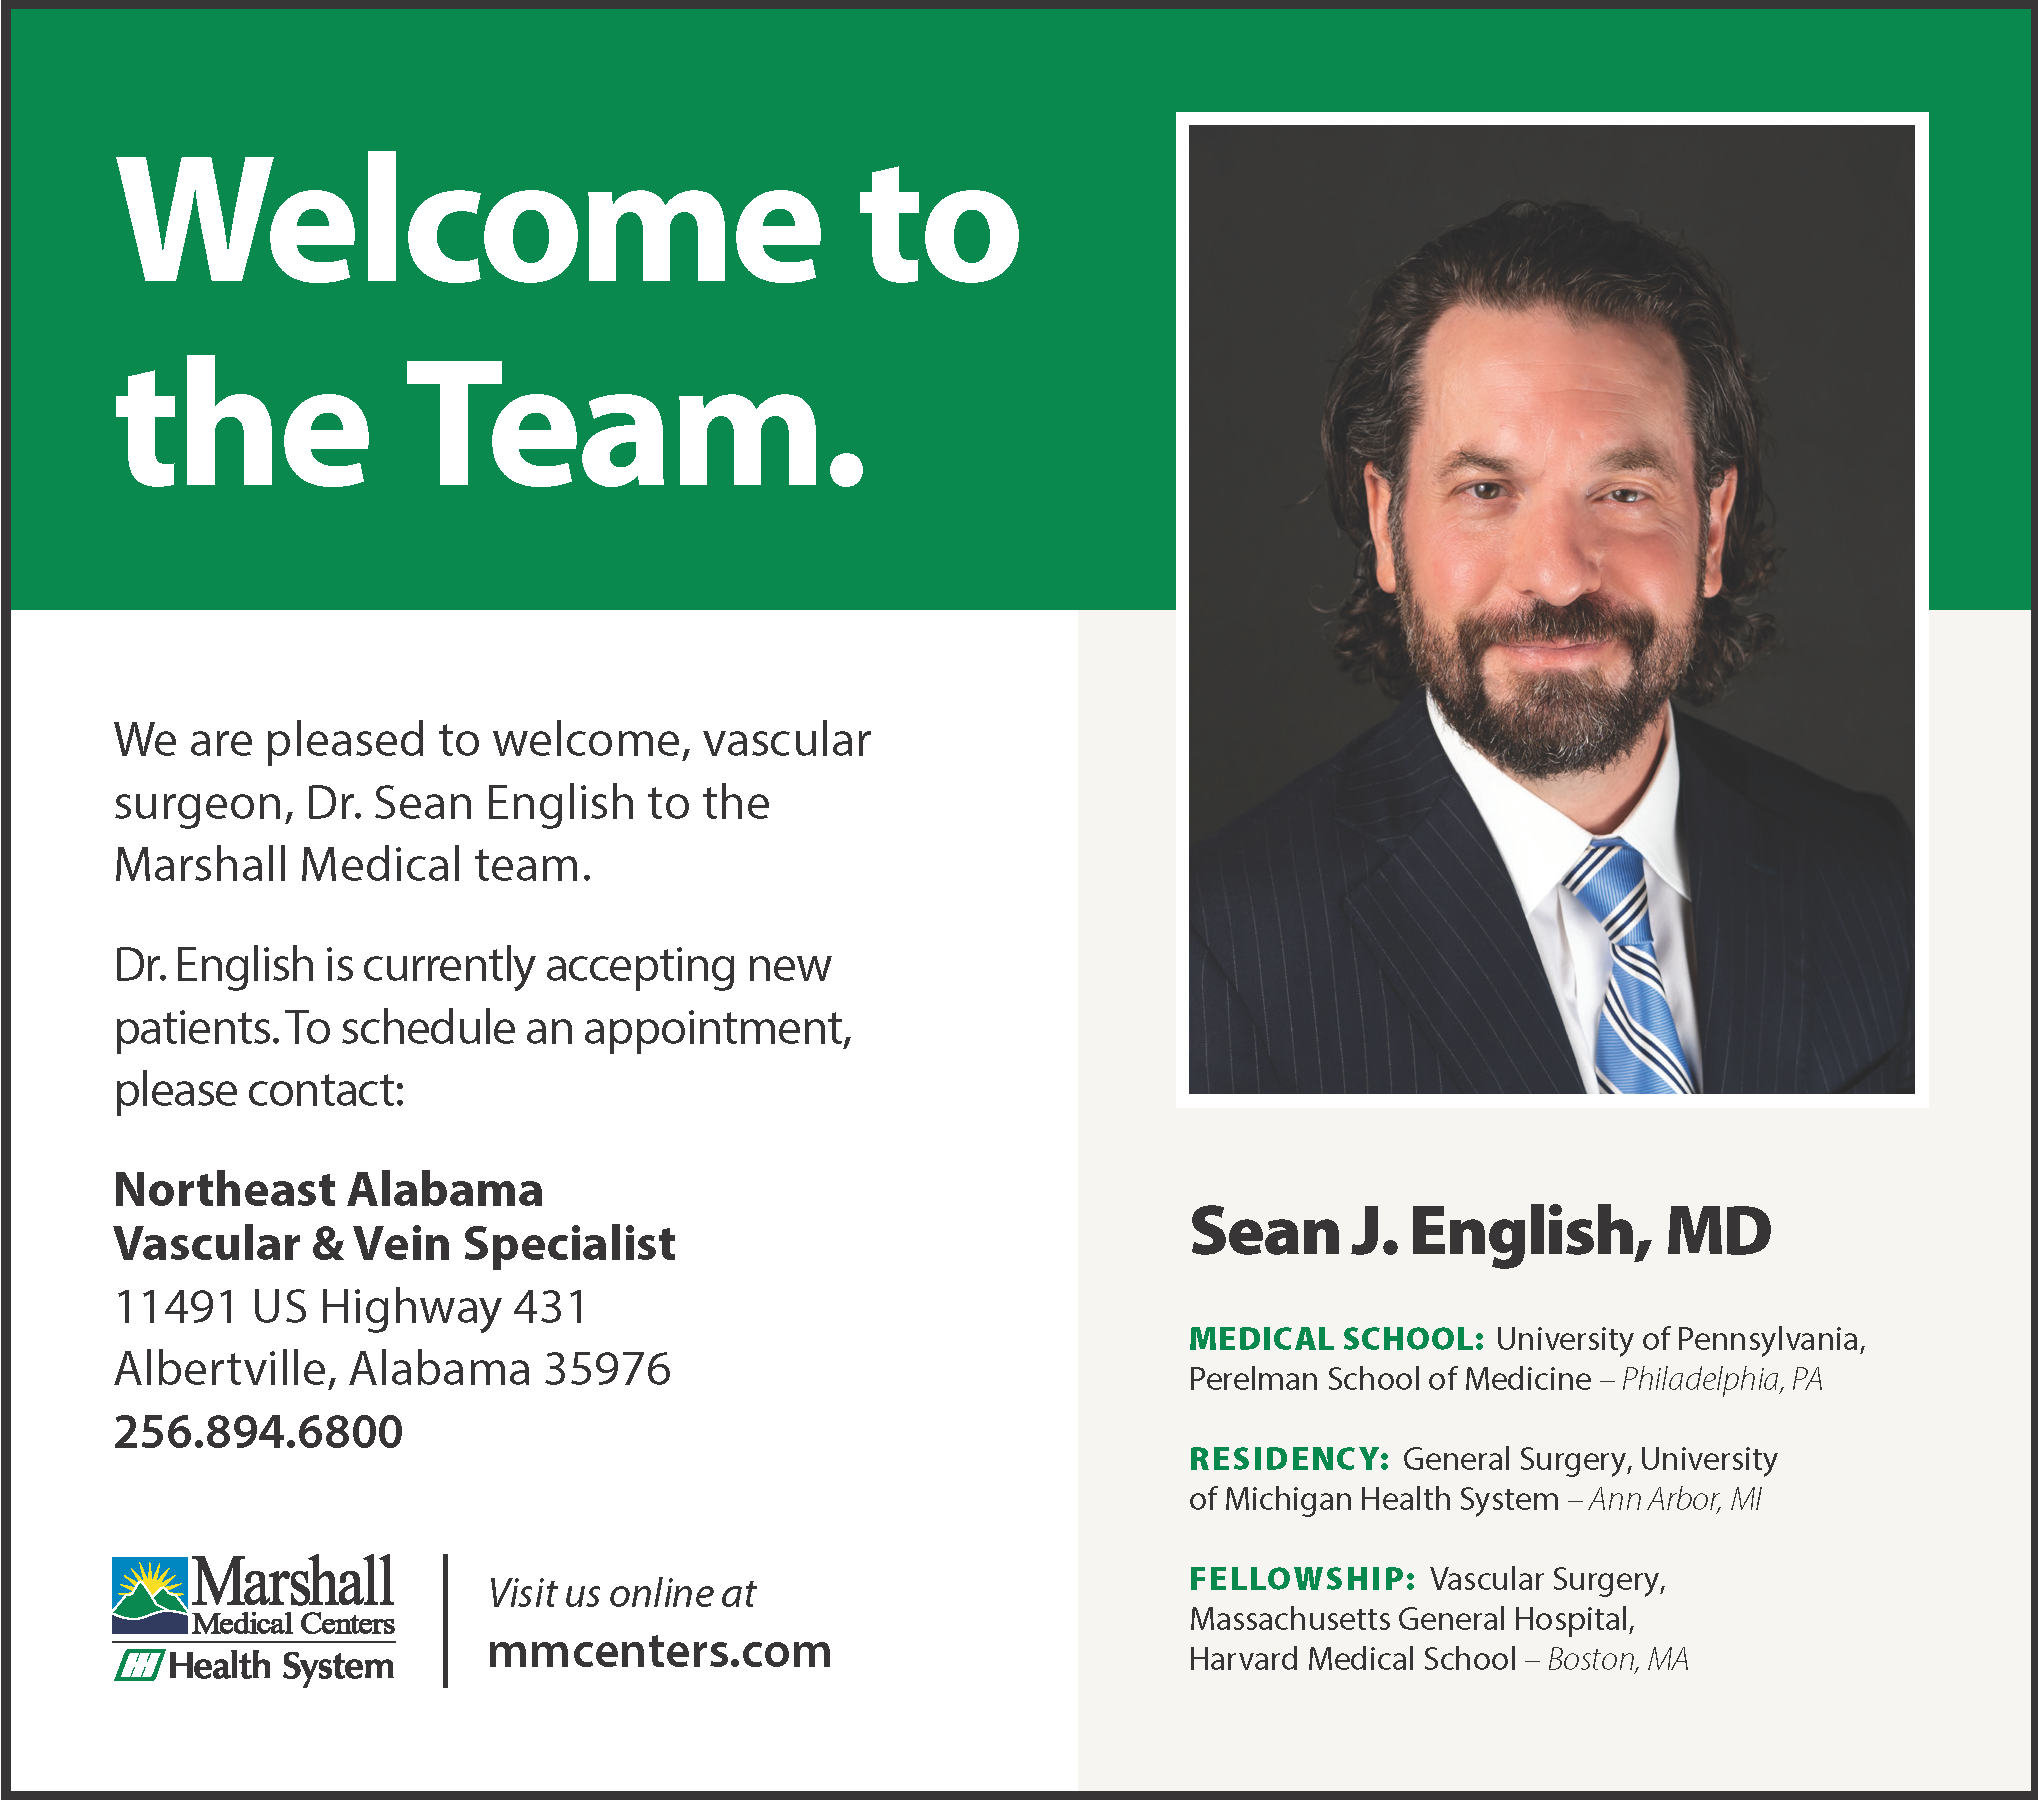 Marshall Medical Centers Welcomes Dr. Sean English